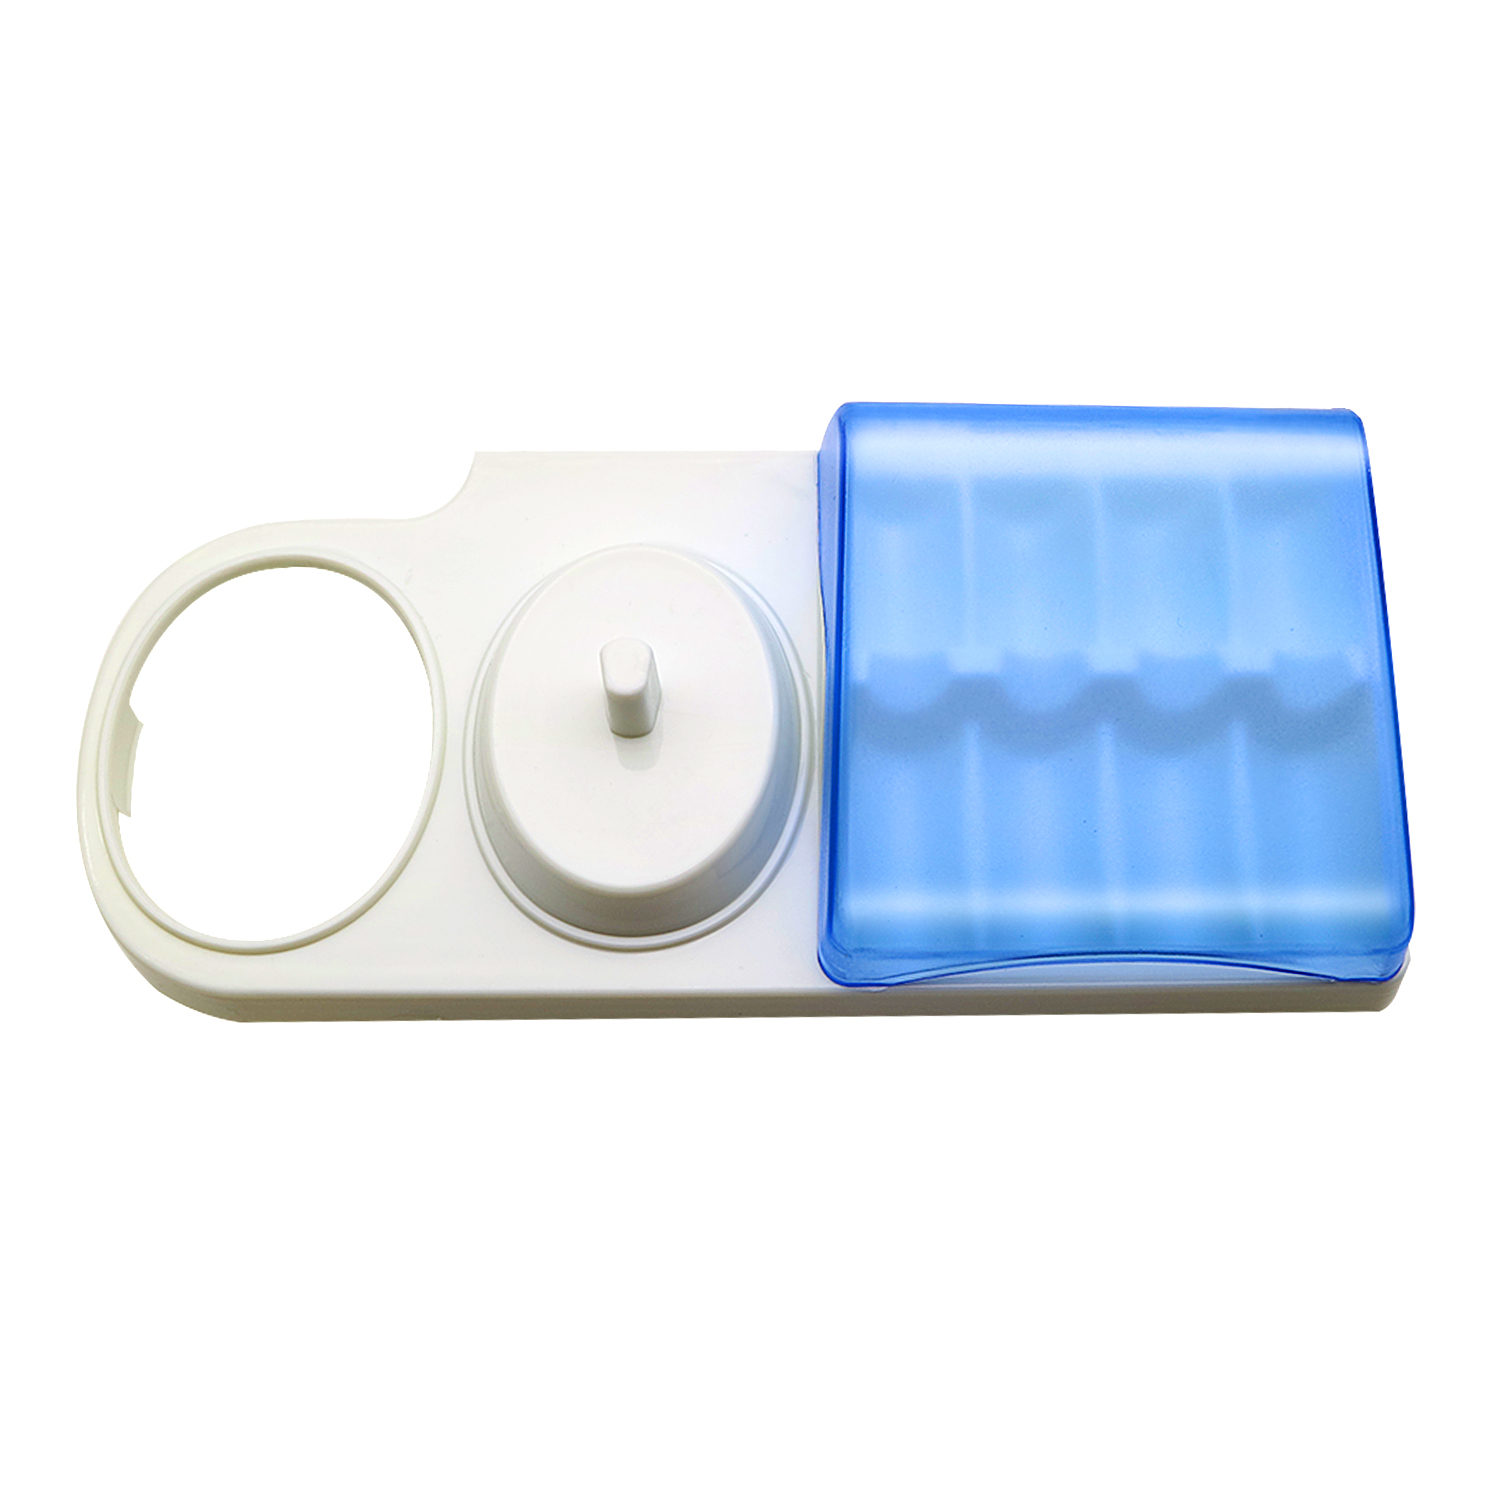 New Portable Brush Head Plastic Support Holder For Oral-B Electric Toothbrush Stand D12 D20 D17 D18 D29 D34 Pro 1000 600 690 700 image